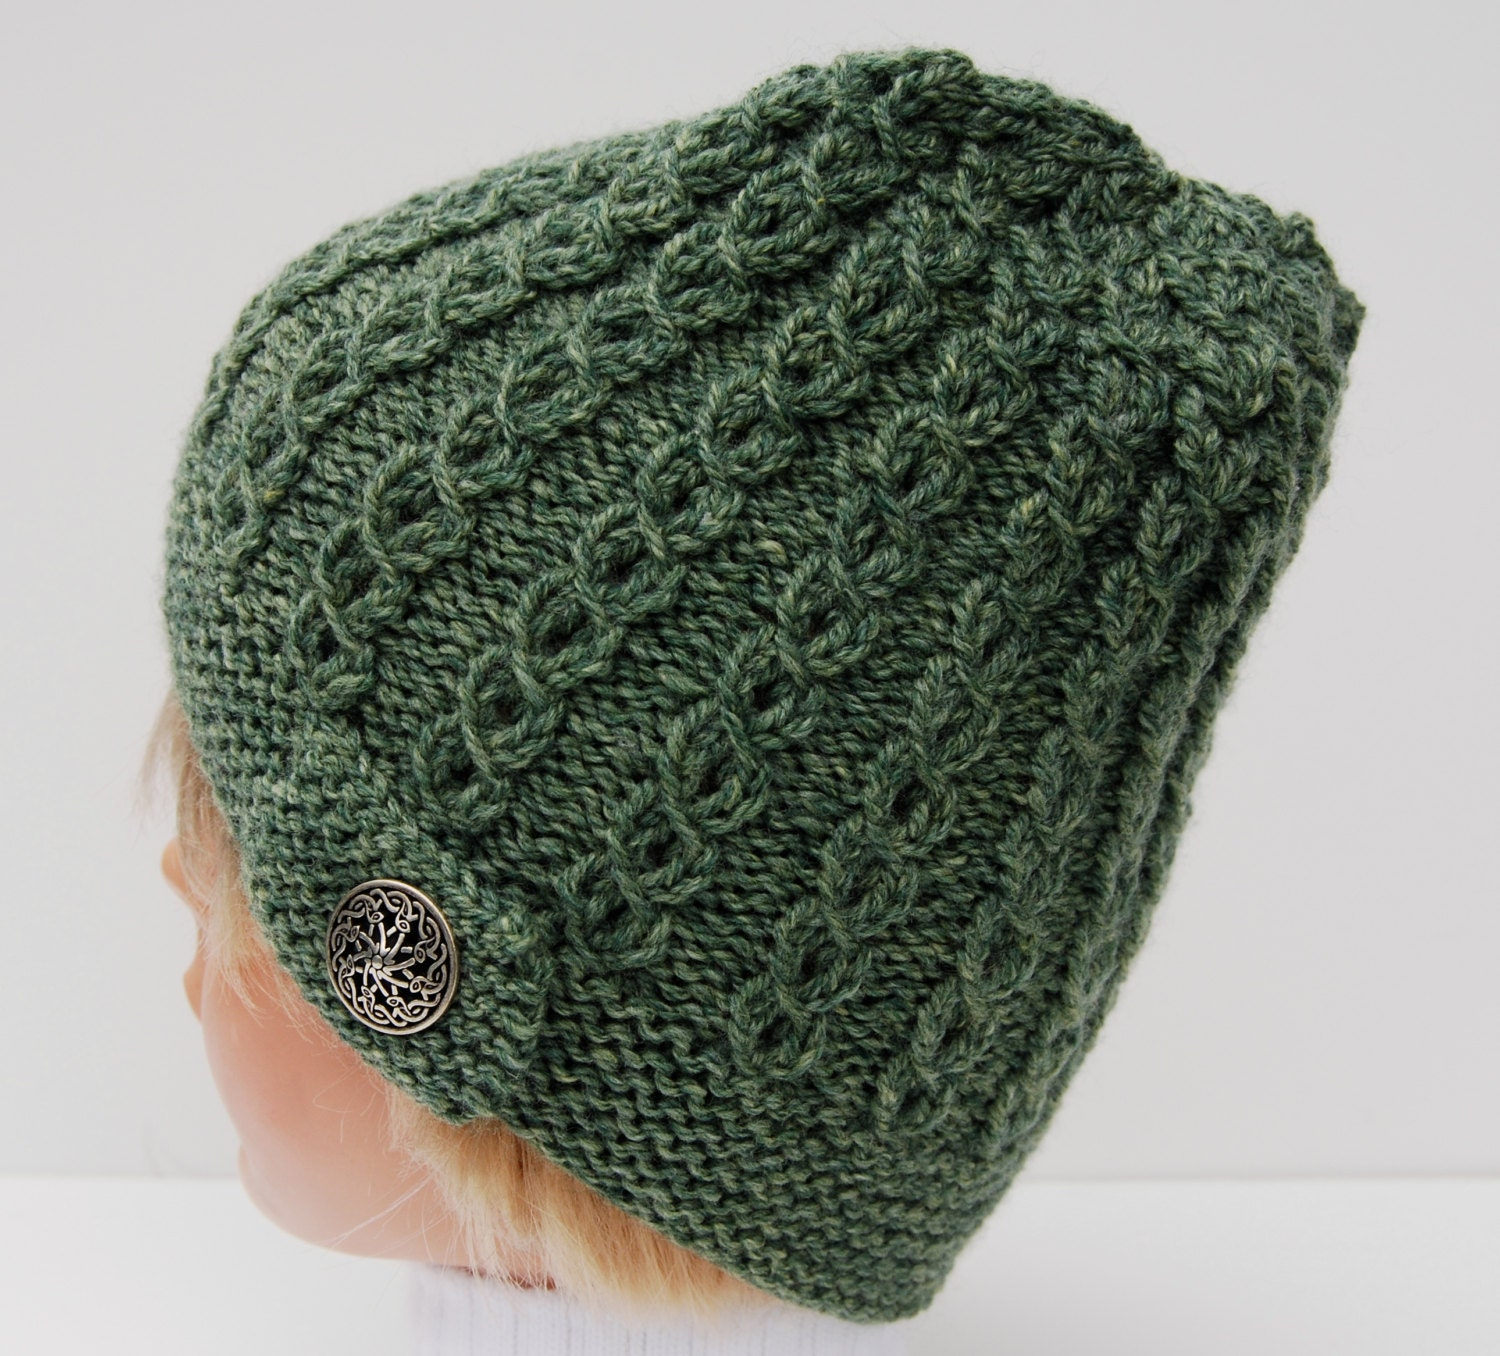 Knit green beanie knit cable stitch hat knit by LoopsAndLines